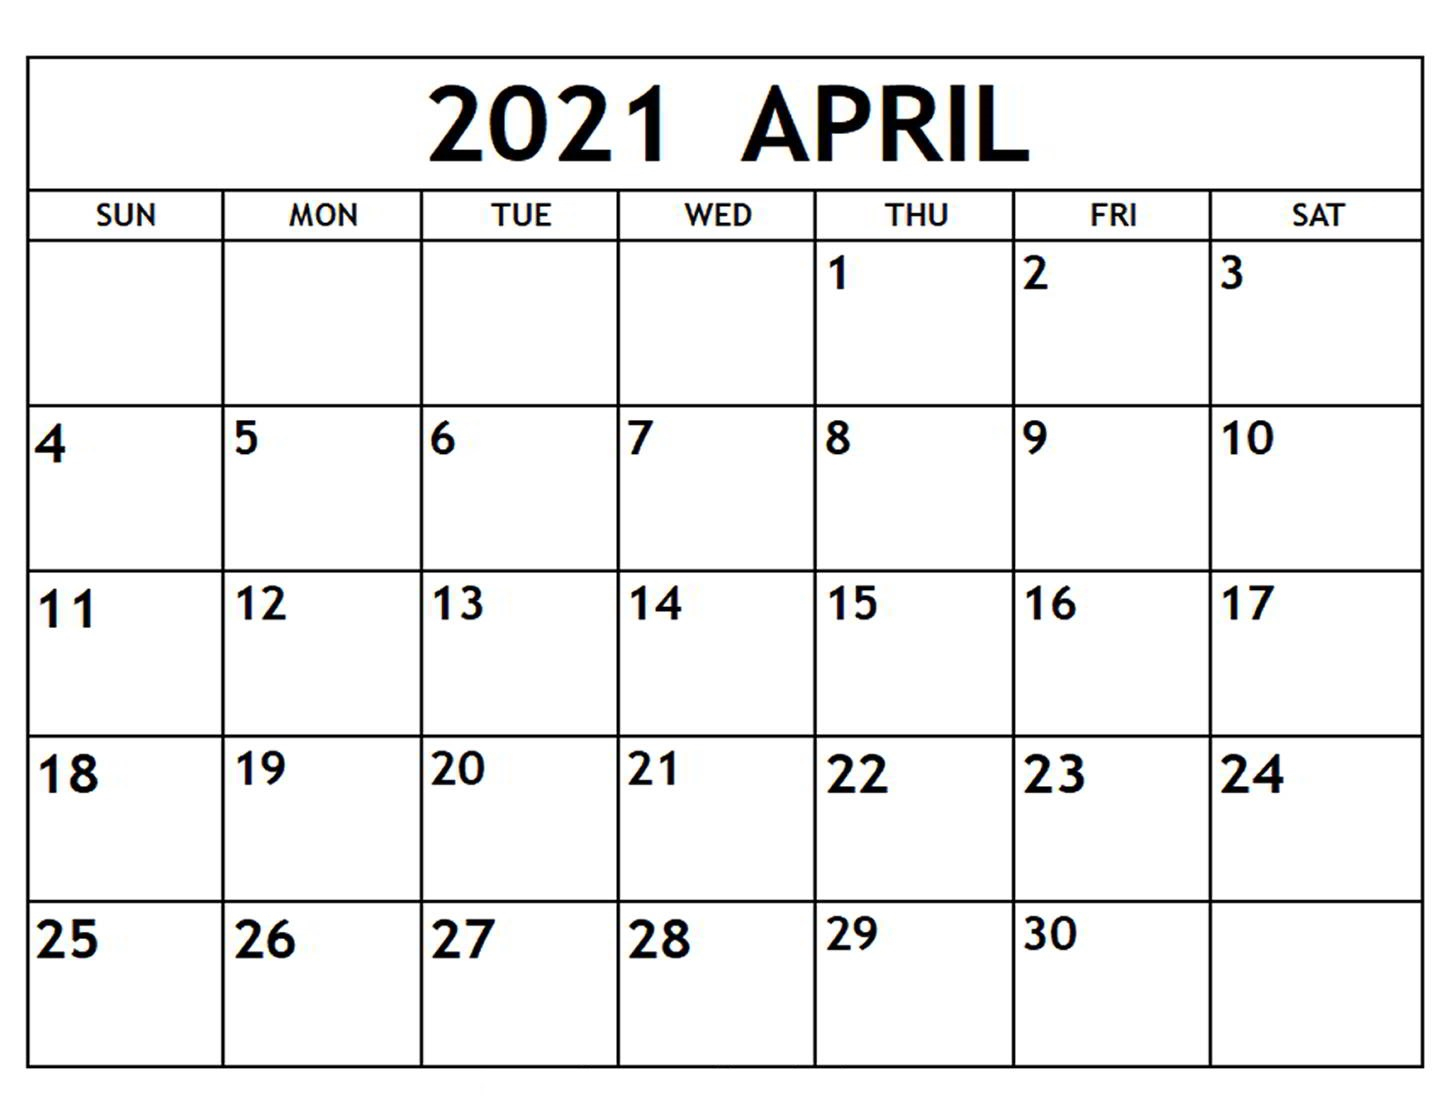 April 2021 Calendar Printable Template Thecalendarpedia